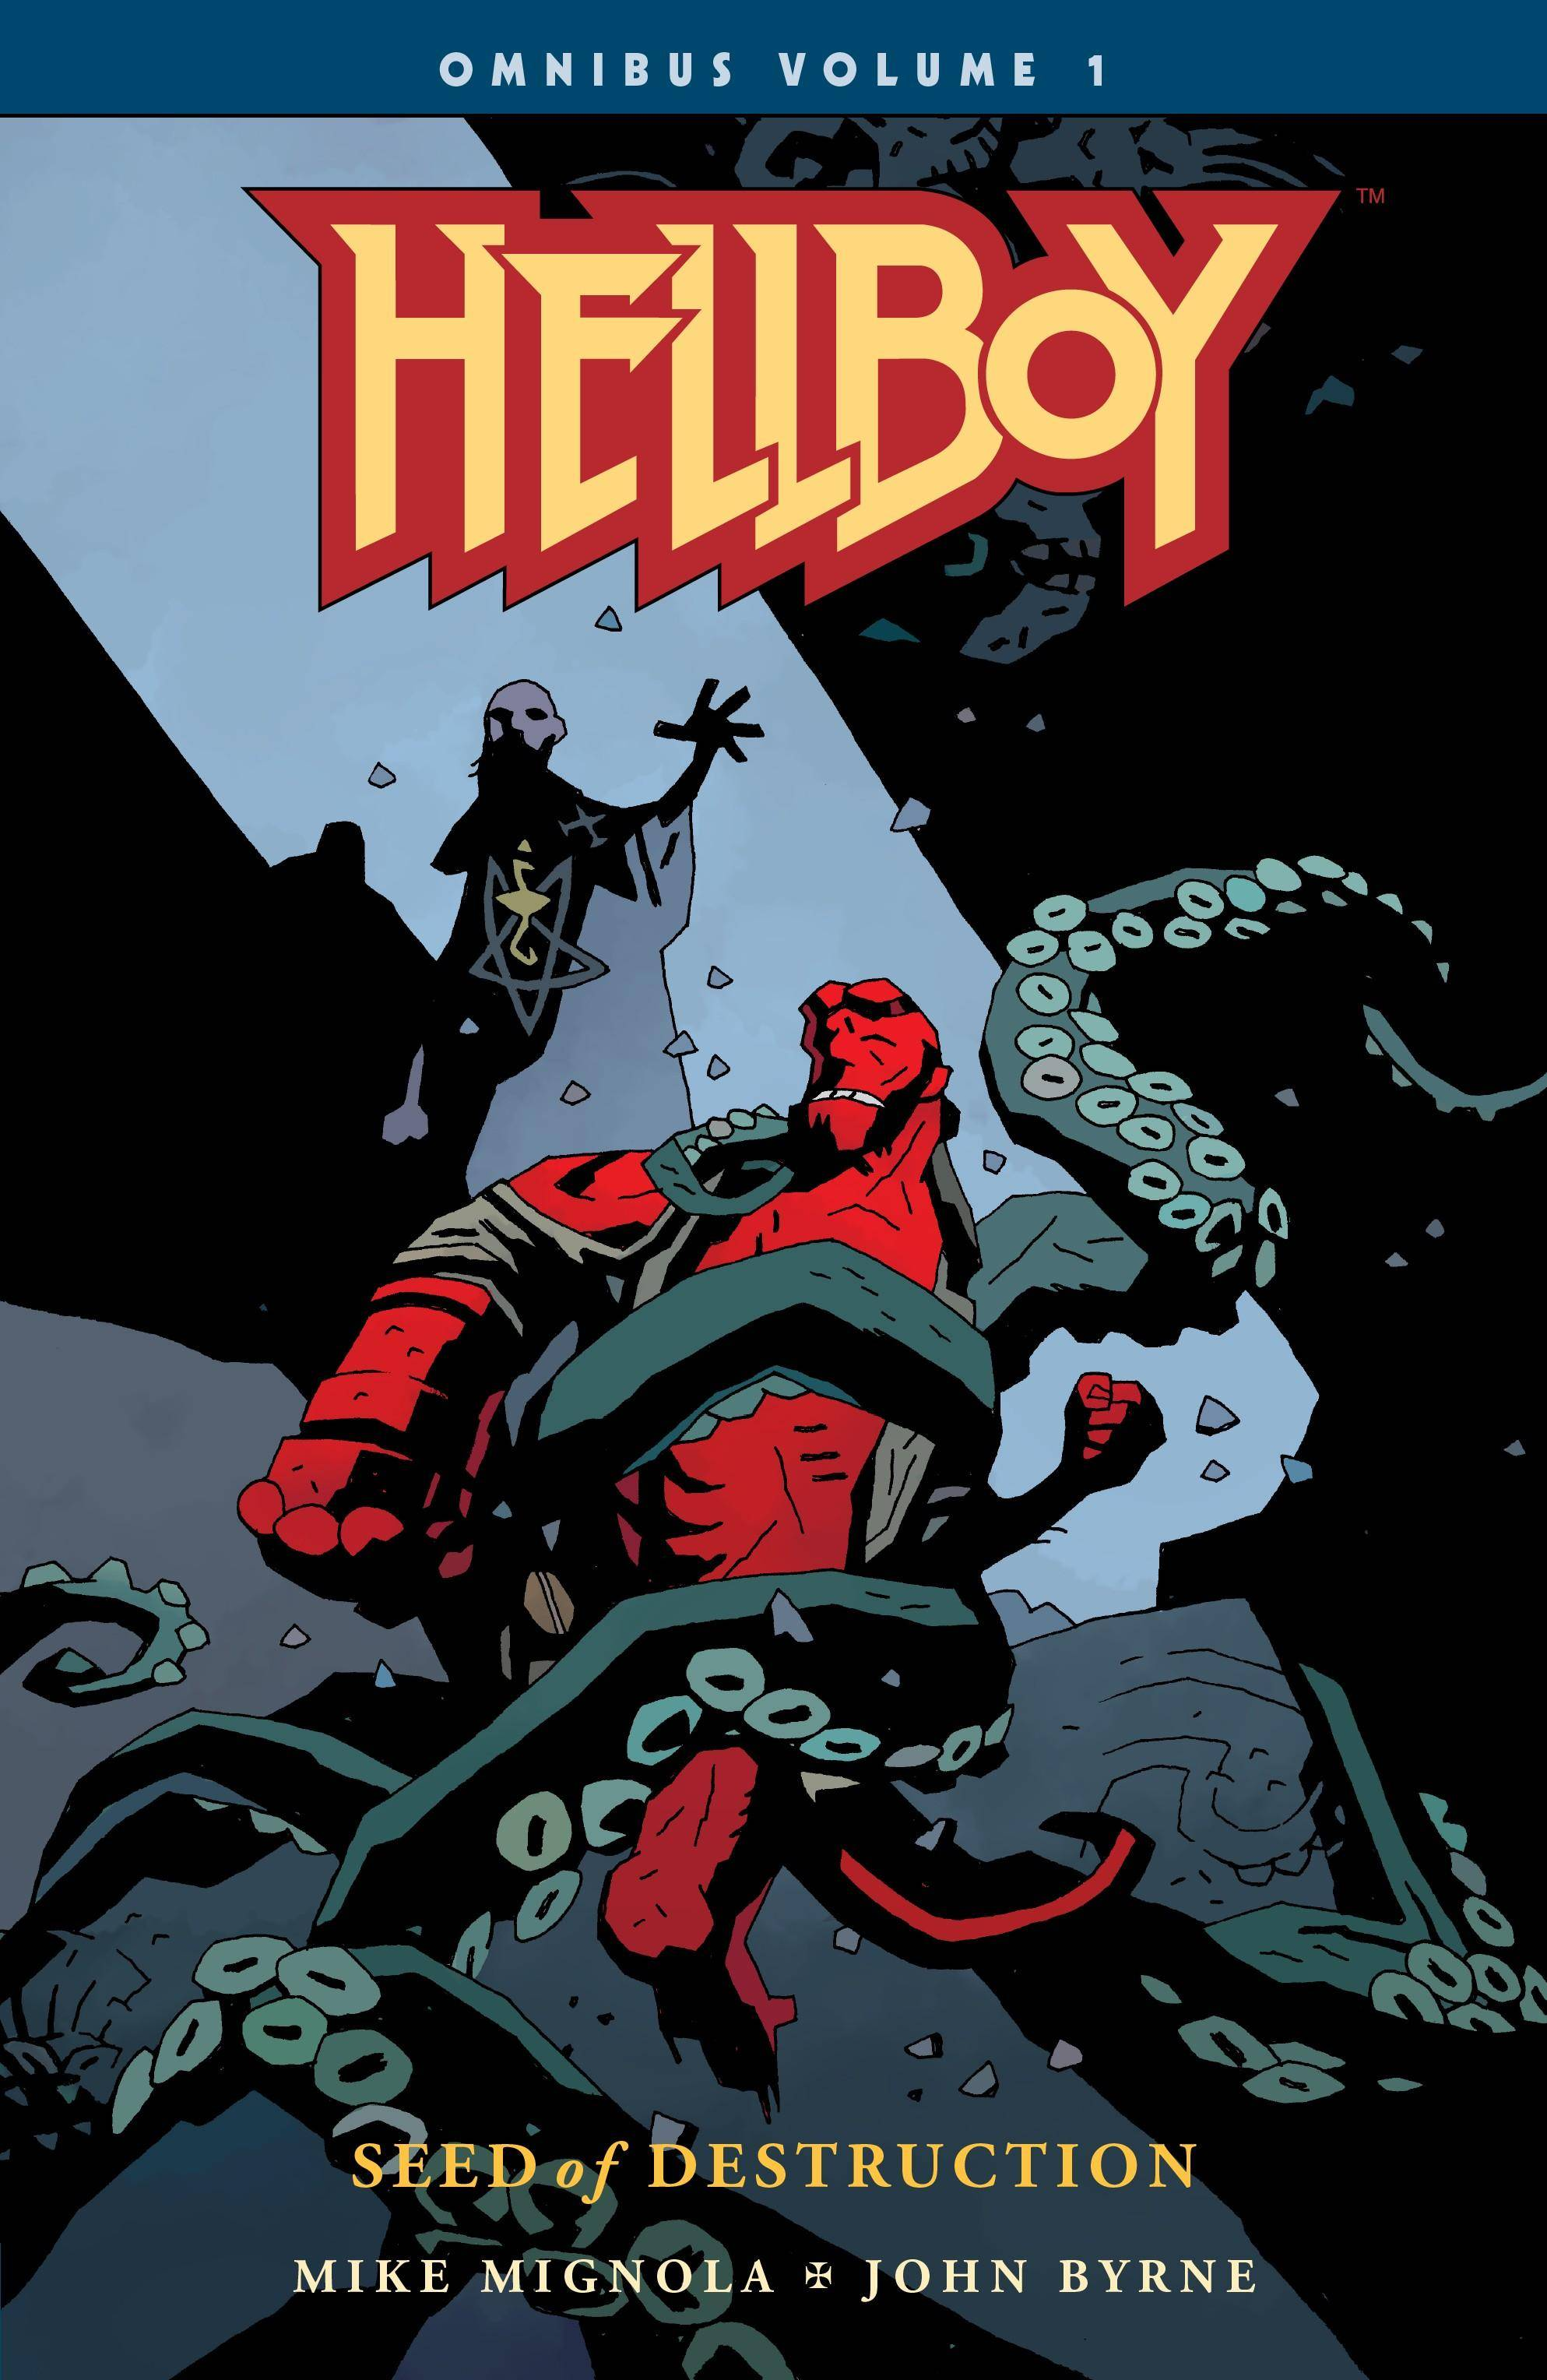 Hellboy Omnibus v01 - Seed of Destruction (2018) (digital) (Son of Ultron-Empire)